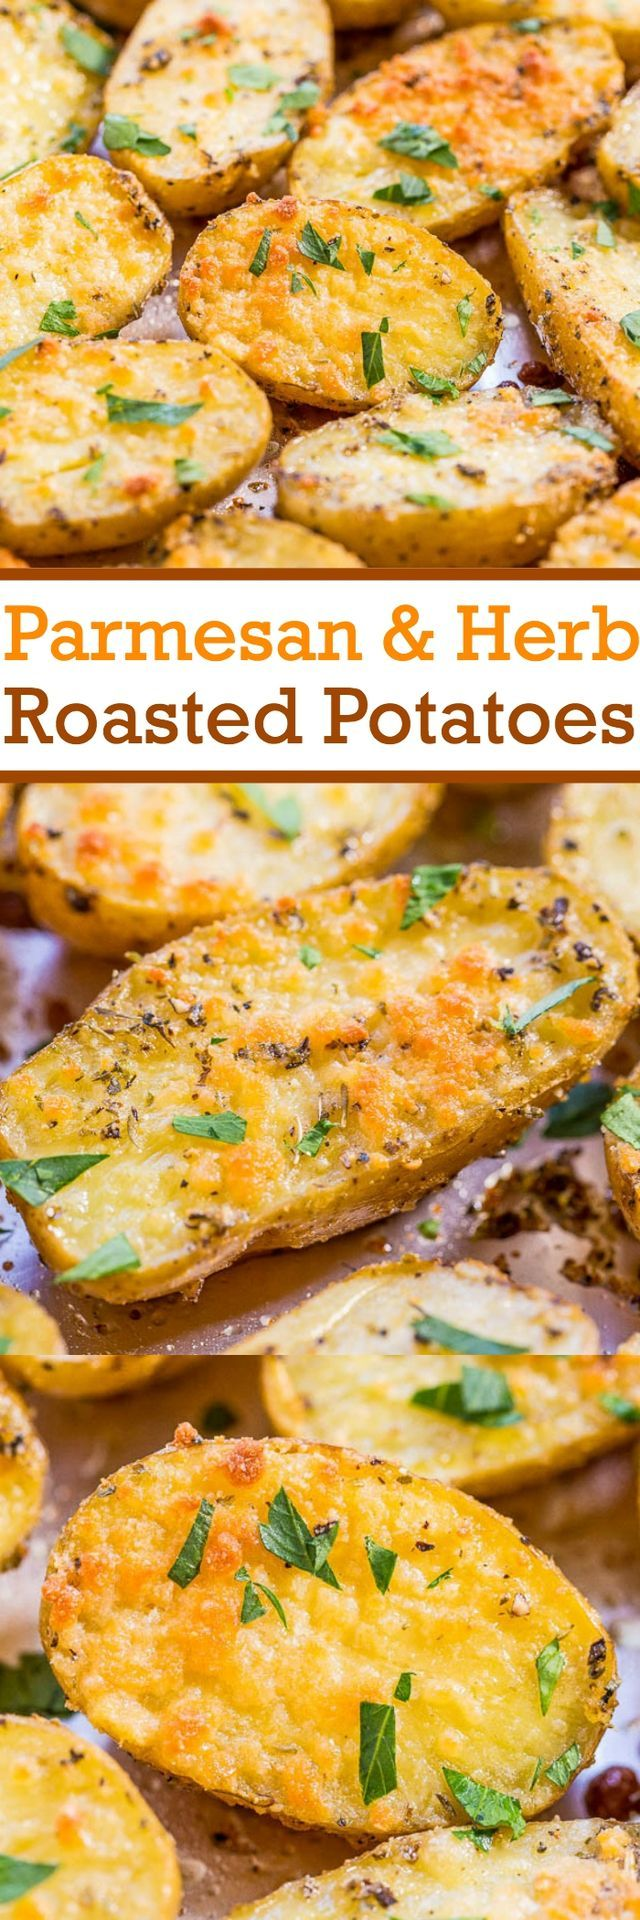 Growing up my mom used to roast potatoes at least three times a week. Now that I'm a mom I know why.  They're easy, inexpensive, hearty, they complement almost any dish, and warm potatoes are the ulti